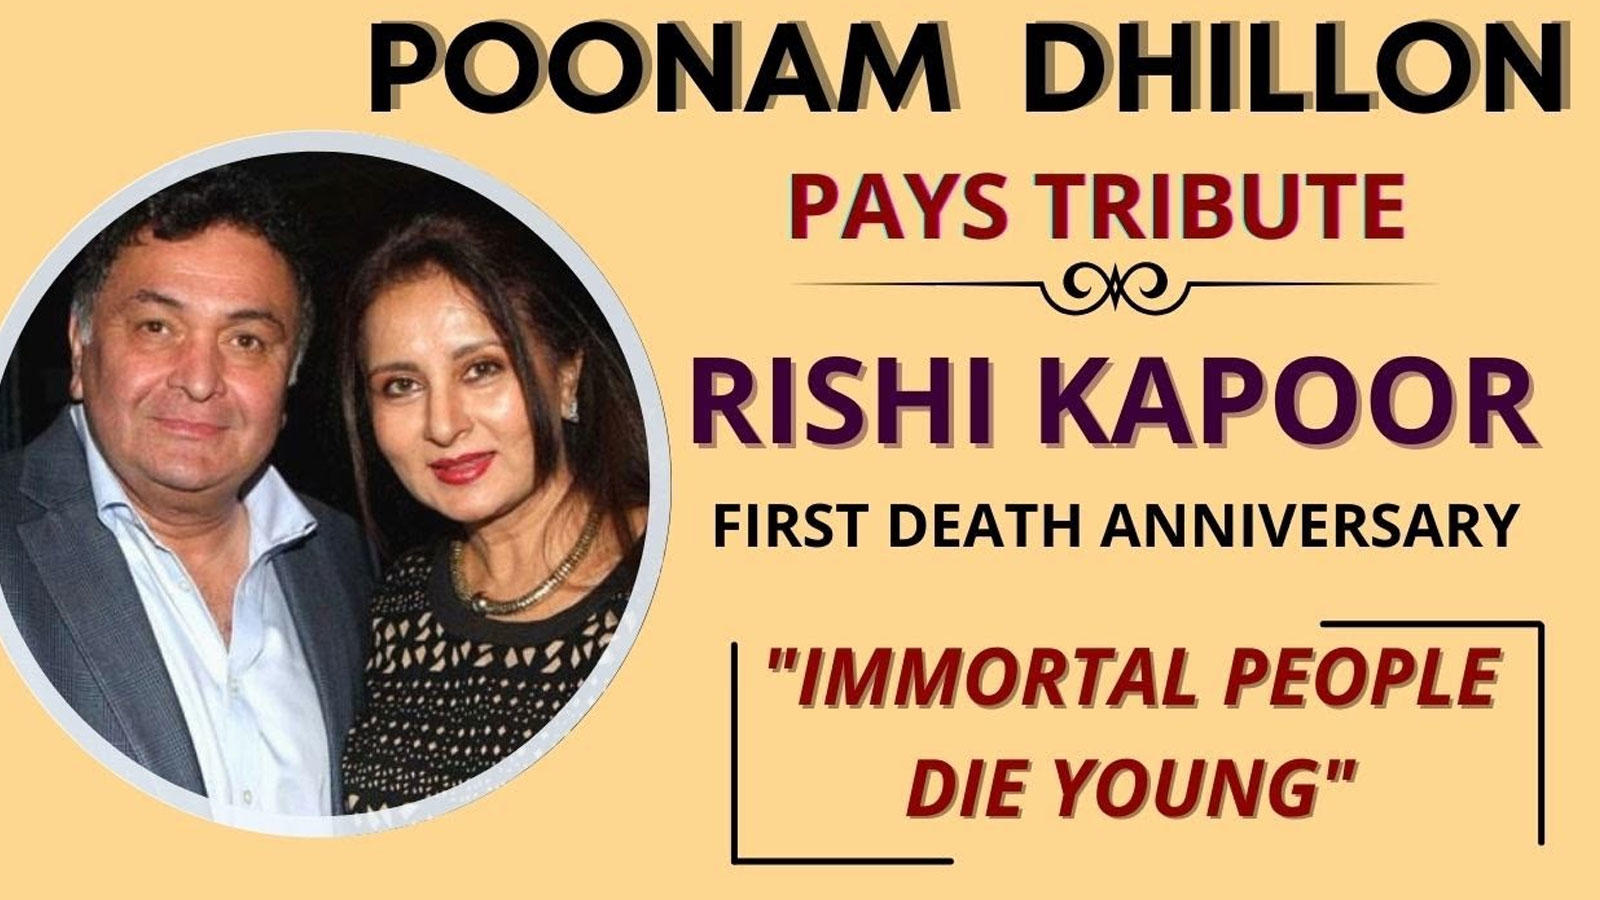 'Immortal people die young': Poonam Dhillon pays tribute to Rishi Kapoor on his first death anniversary | Hindi Movie News – Bollywood – Times of India